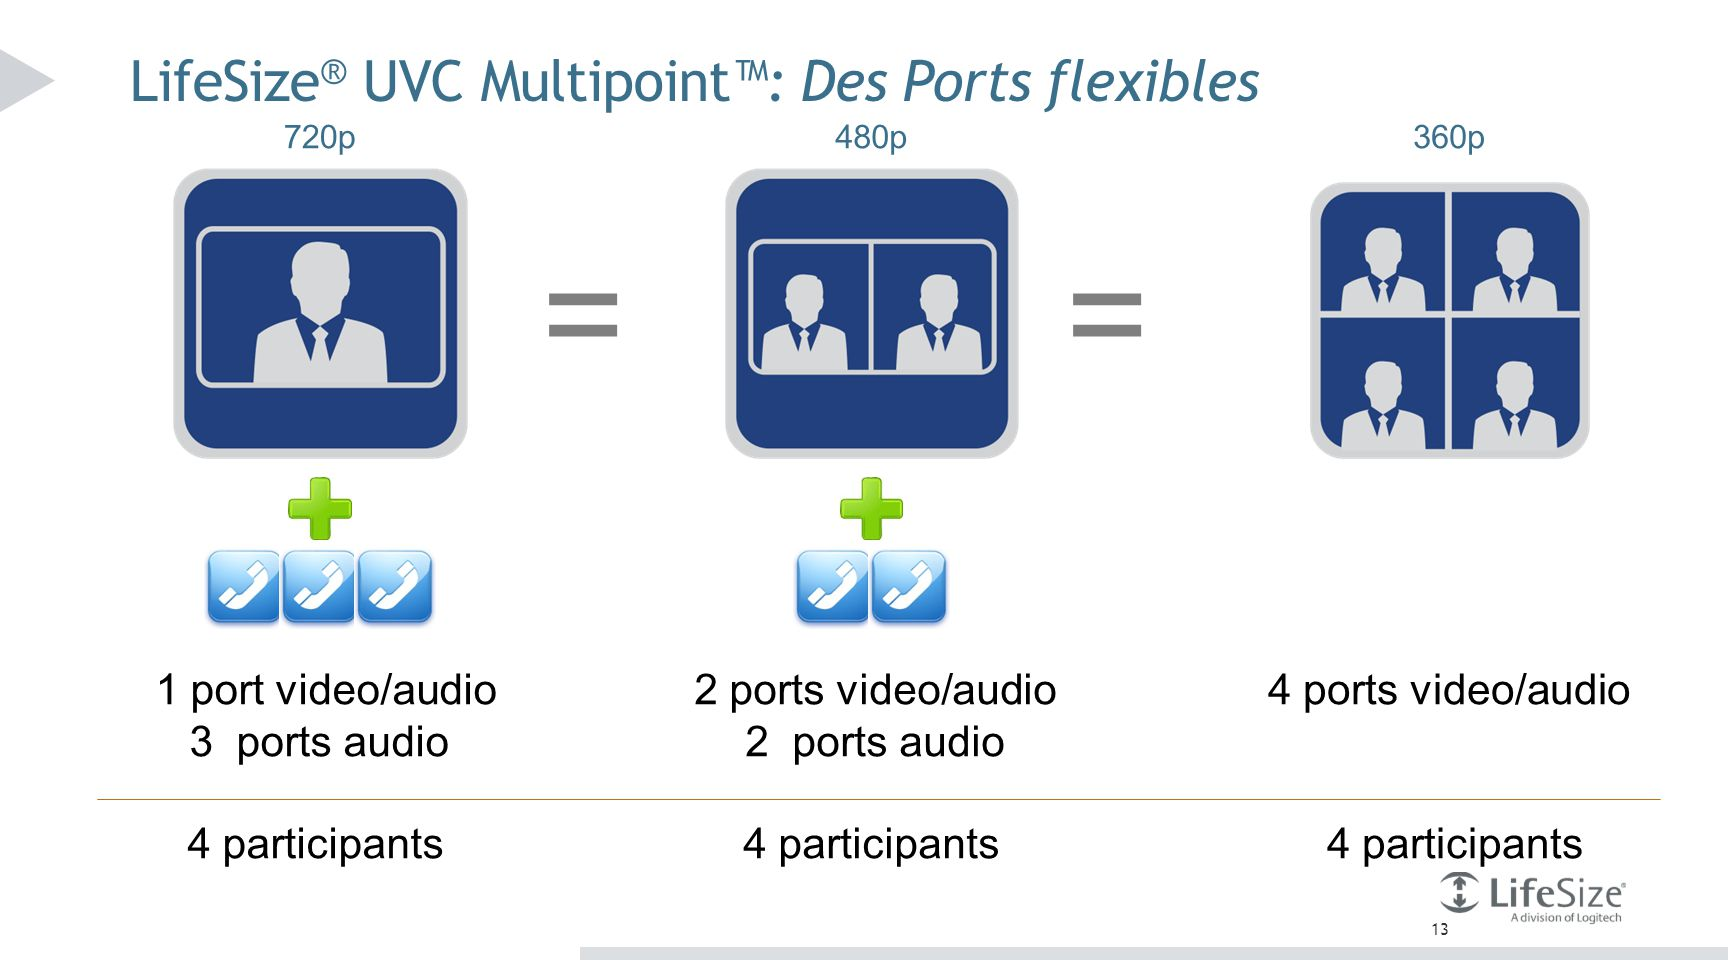 LifeSize® UVC Multipoint™: Des Ports flexibles